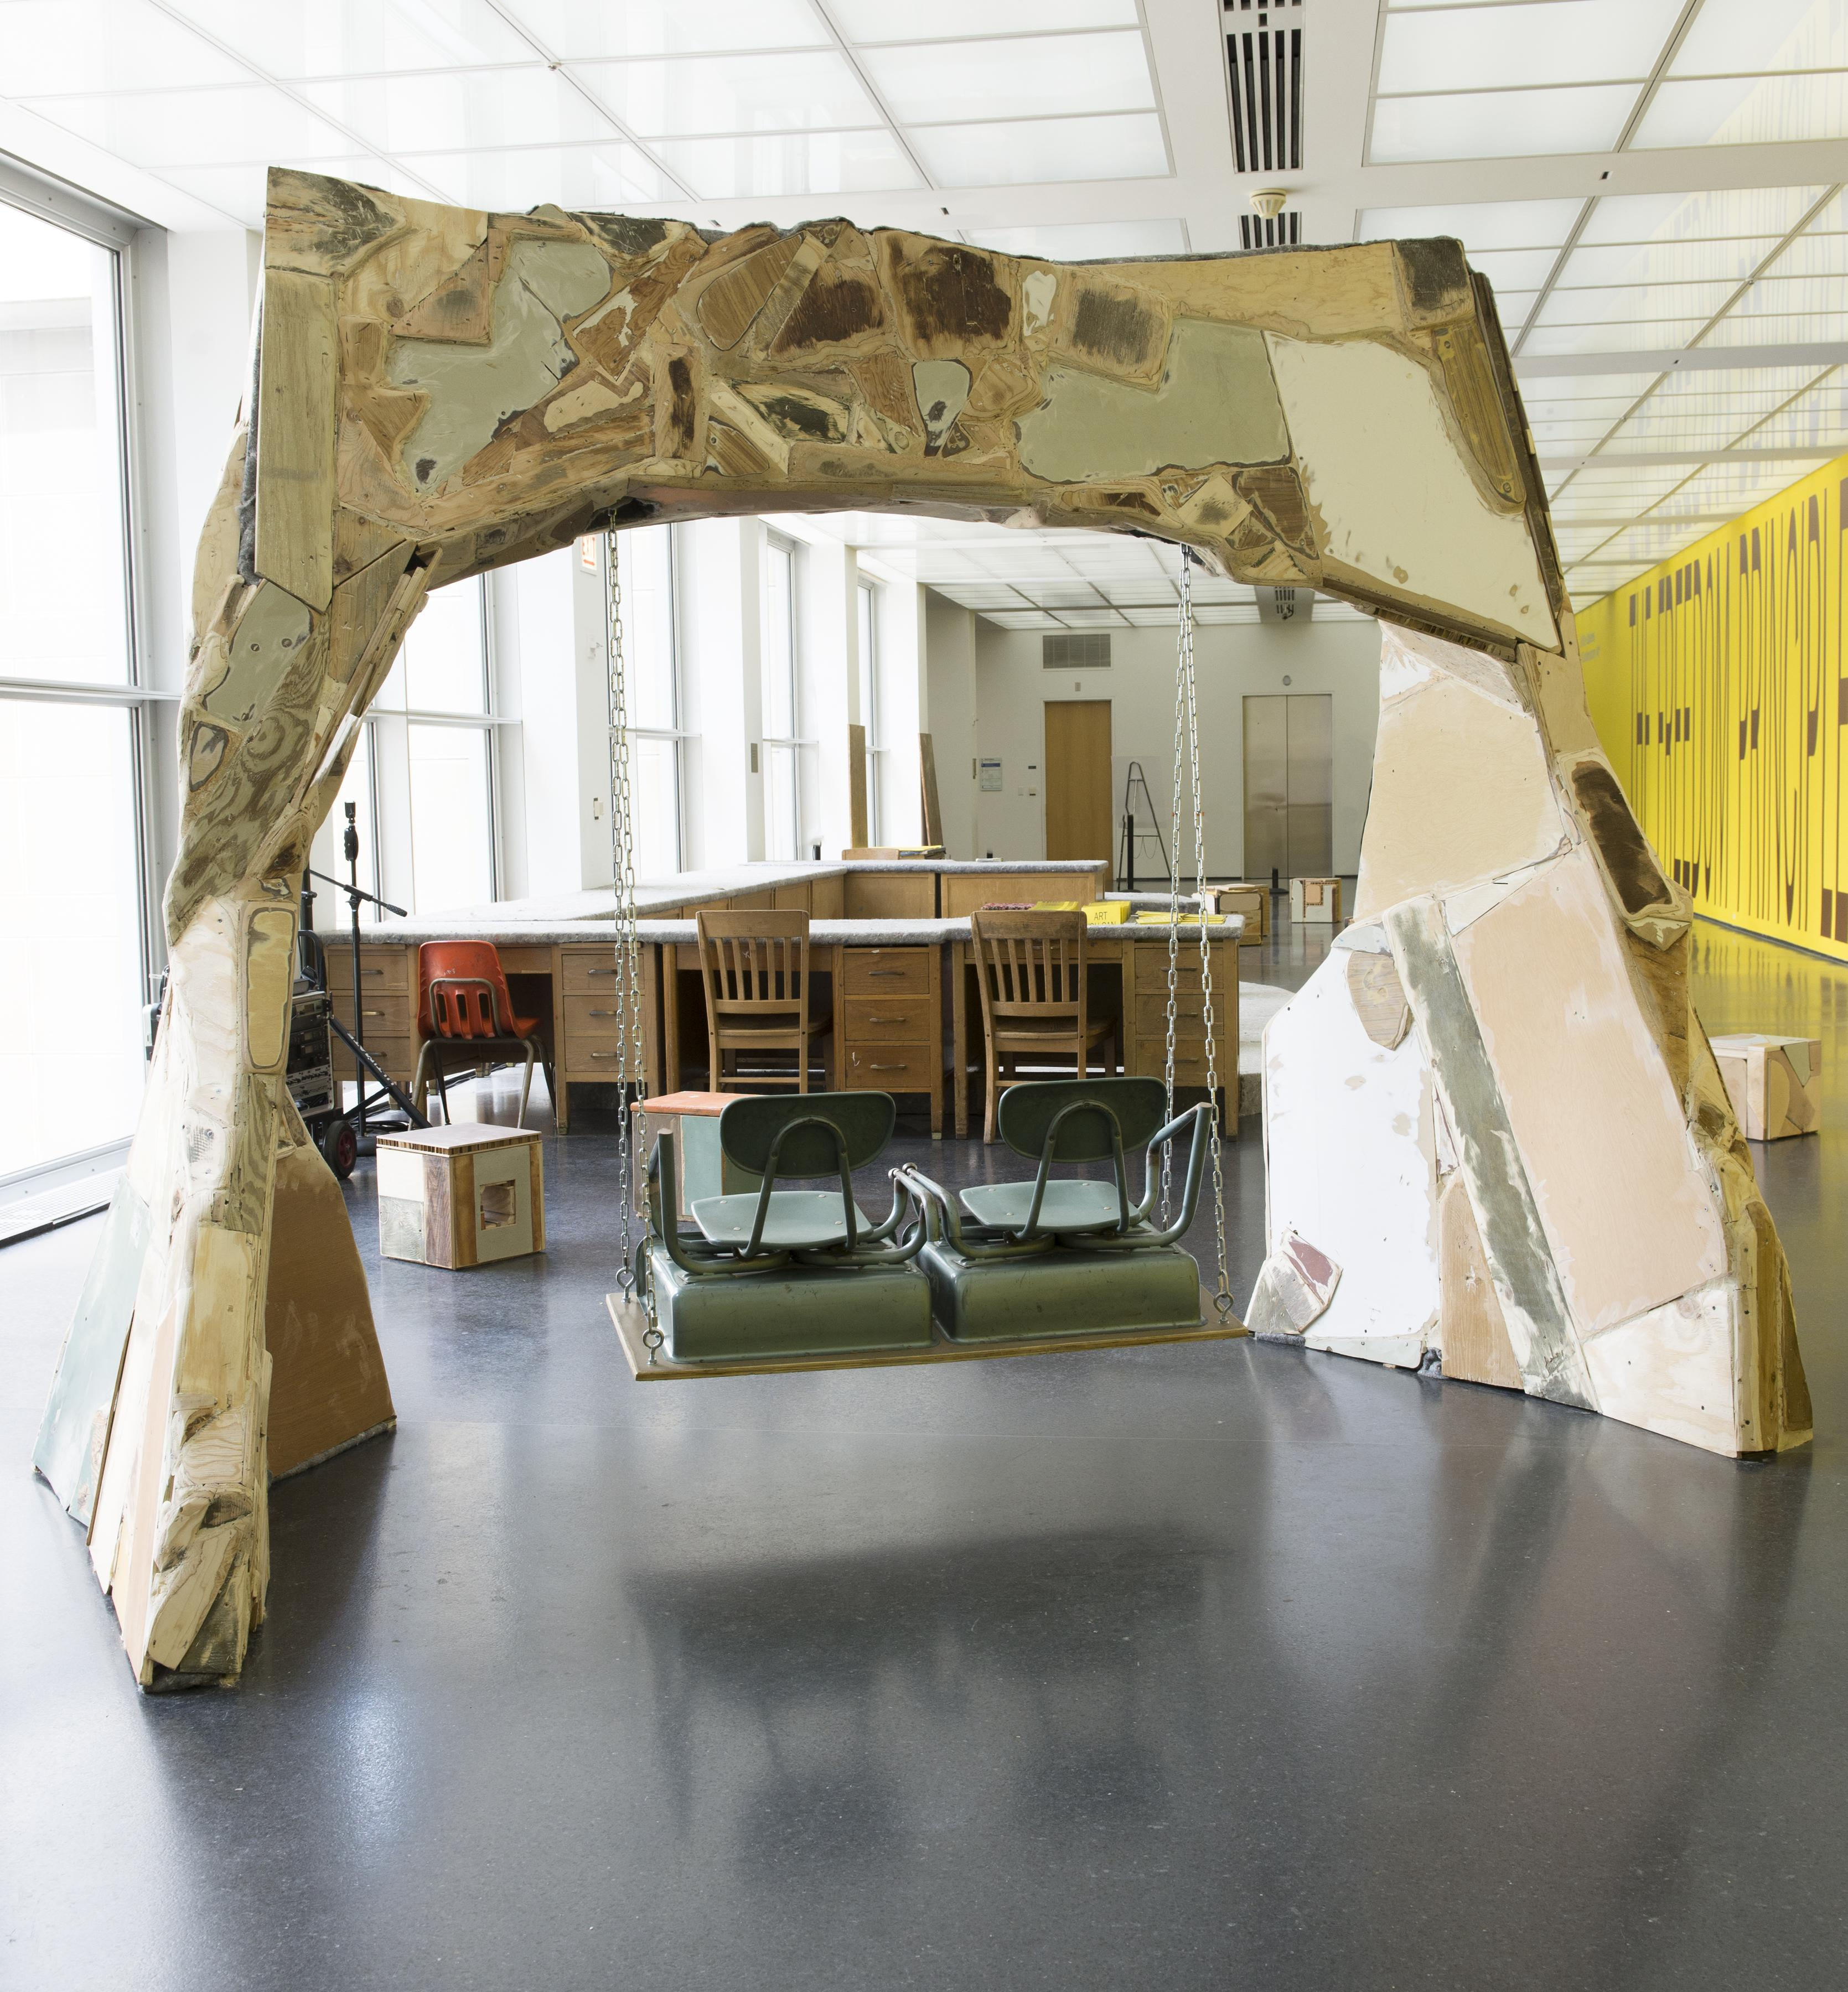 A two-seat swing made of school chairs hangs from an arch constructed from found materials crudely patched together.